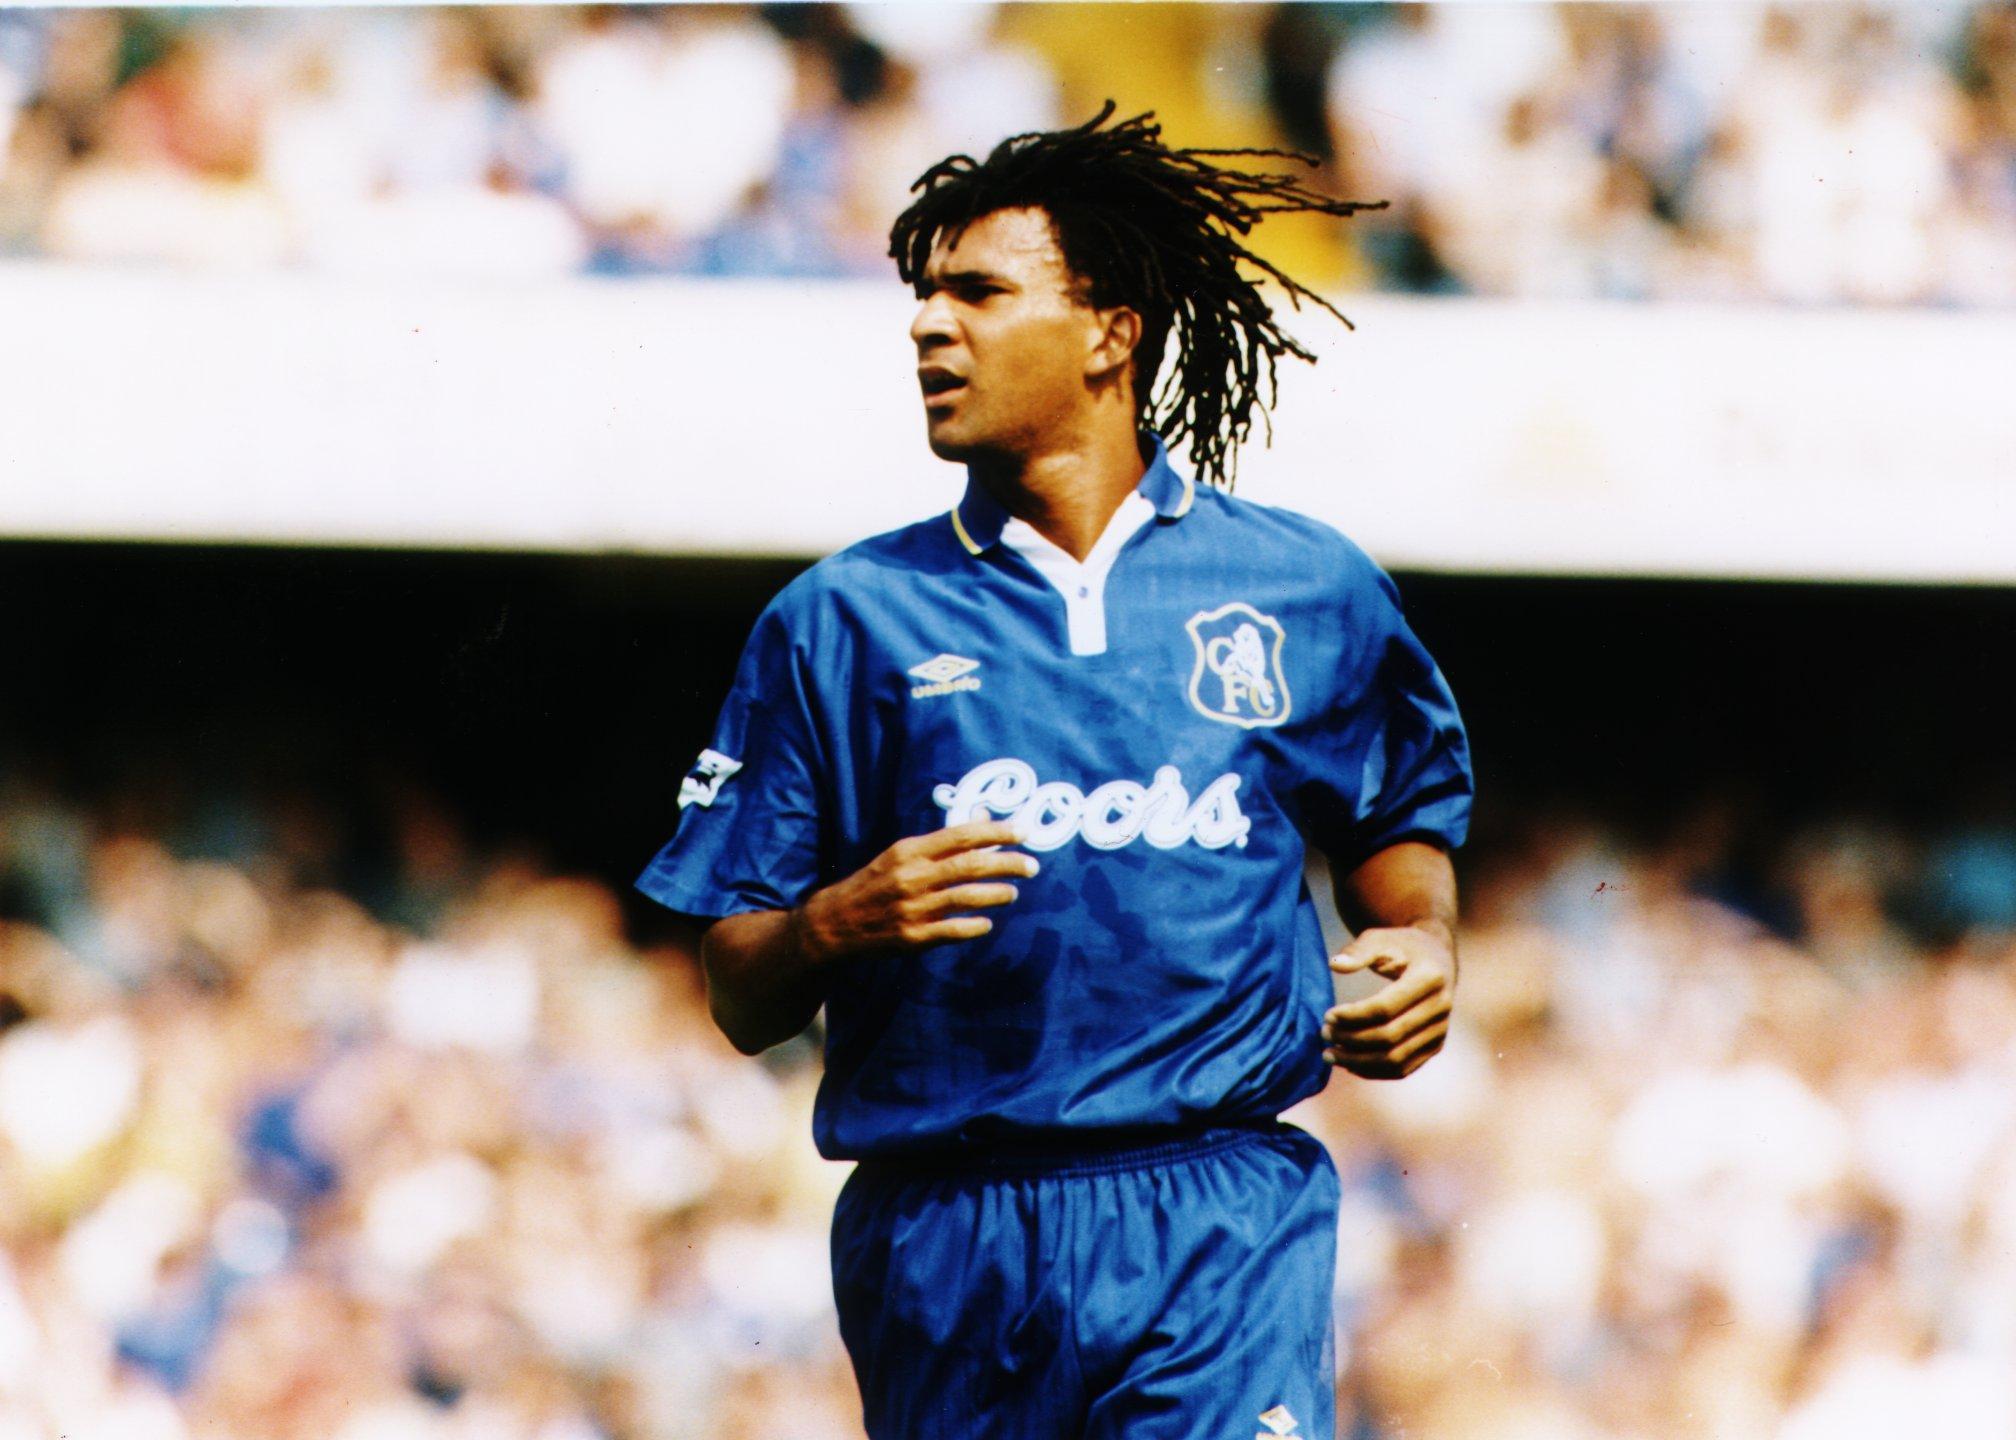 Gullit came to Chelsea in 1995 and was named in the Premier League Team of the Season